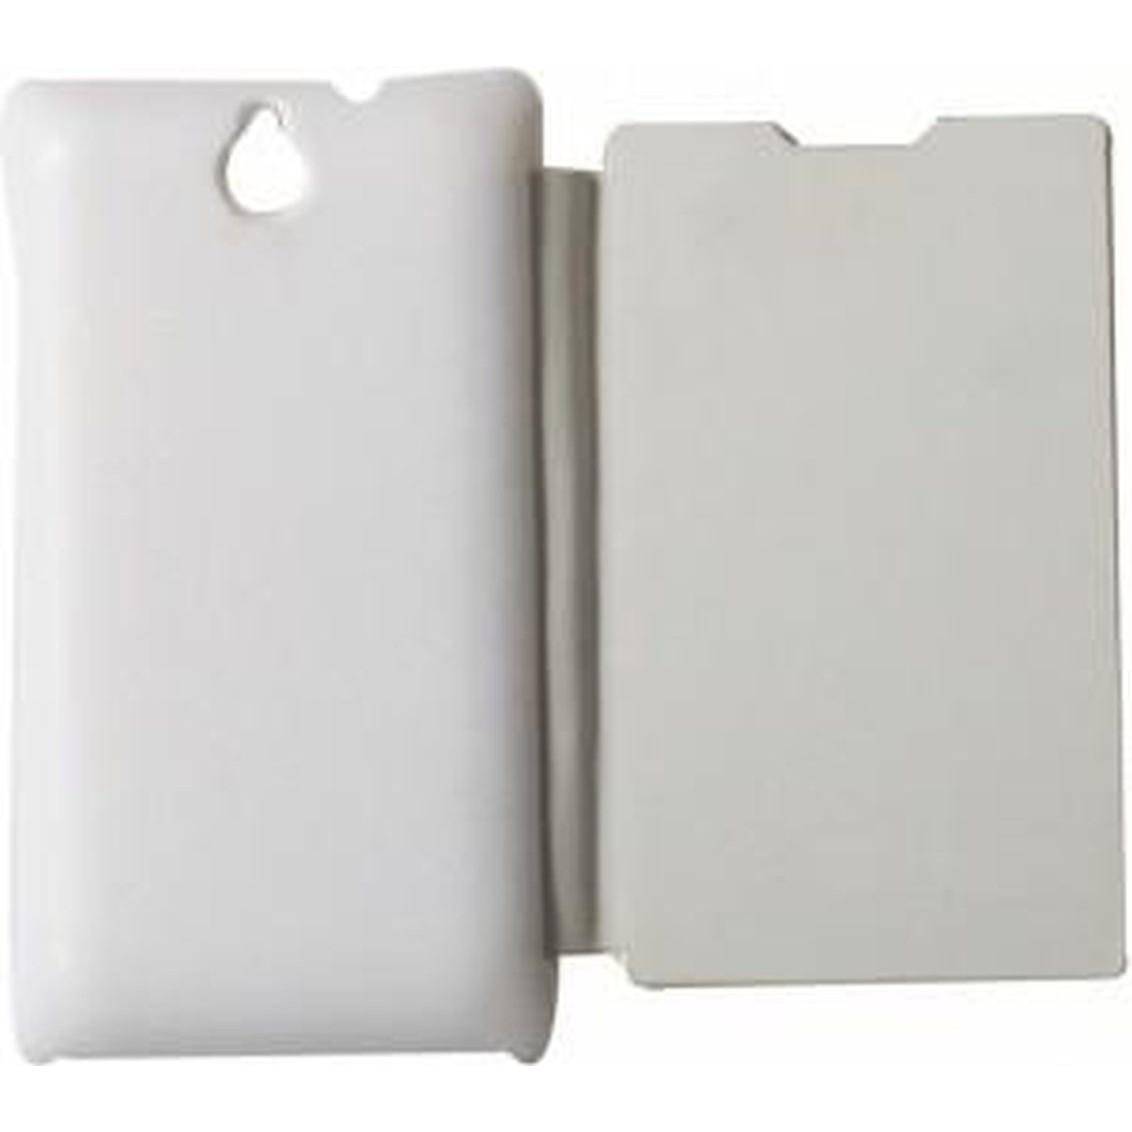 on sale 08765 dc020 Flip Cover for Sony Xperia E1 - White